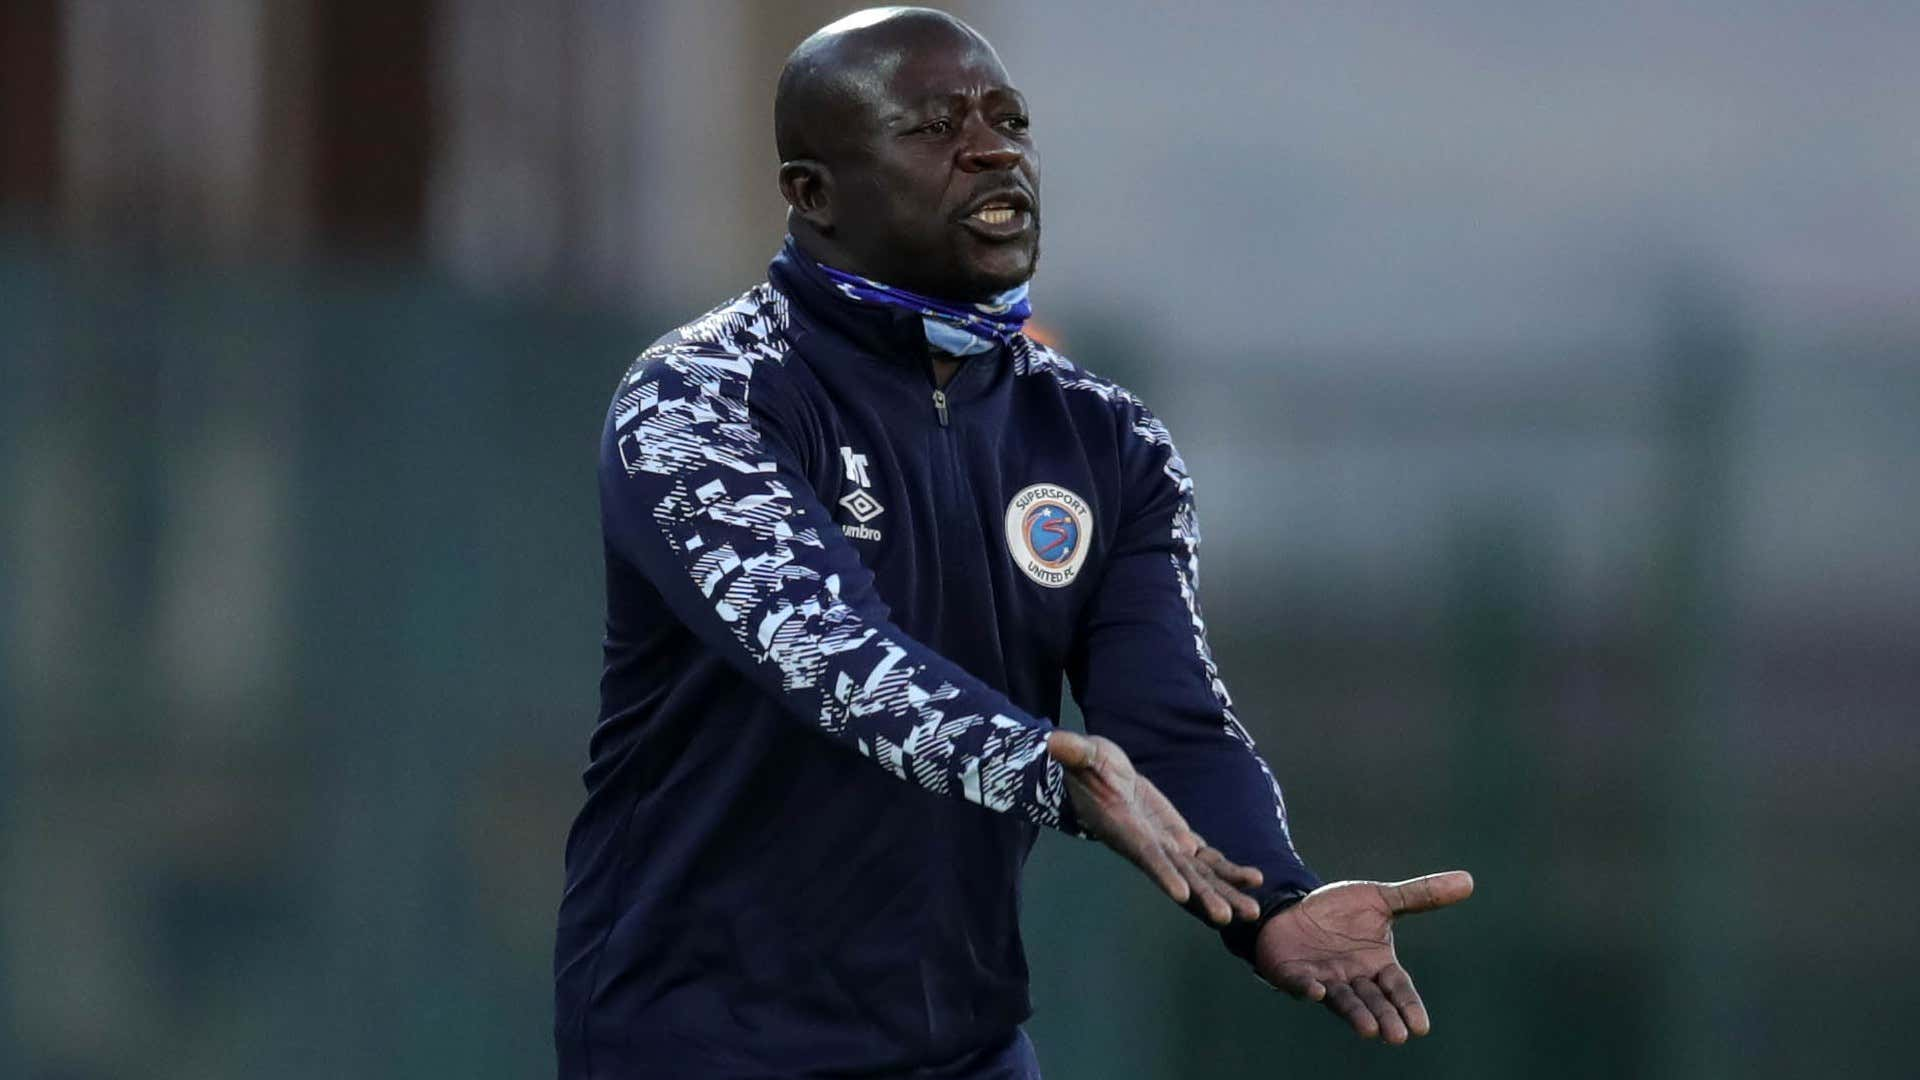 'On any good day they can punish you' - SuperSport United's Tembo wary of Kaizer Chiefs | Goal.com